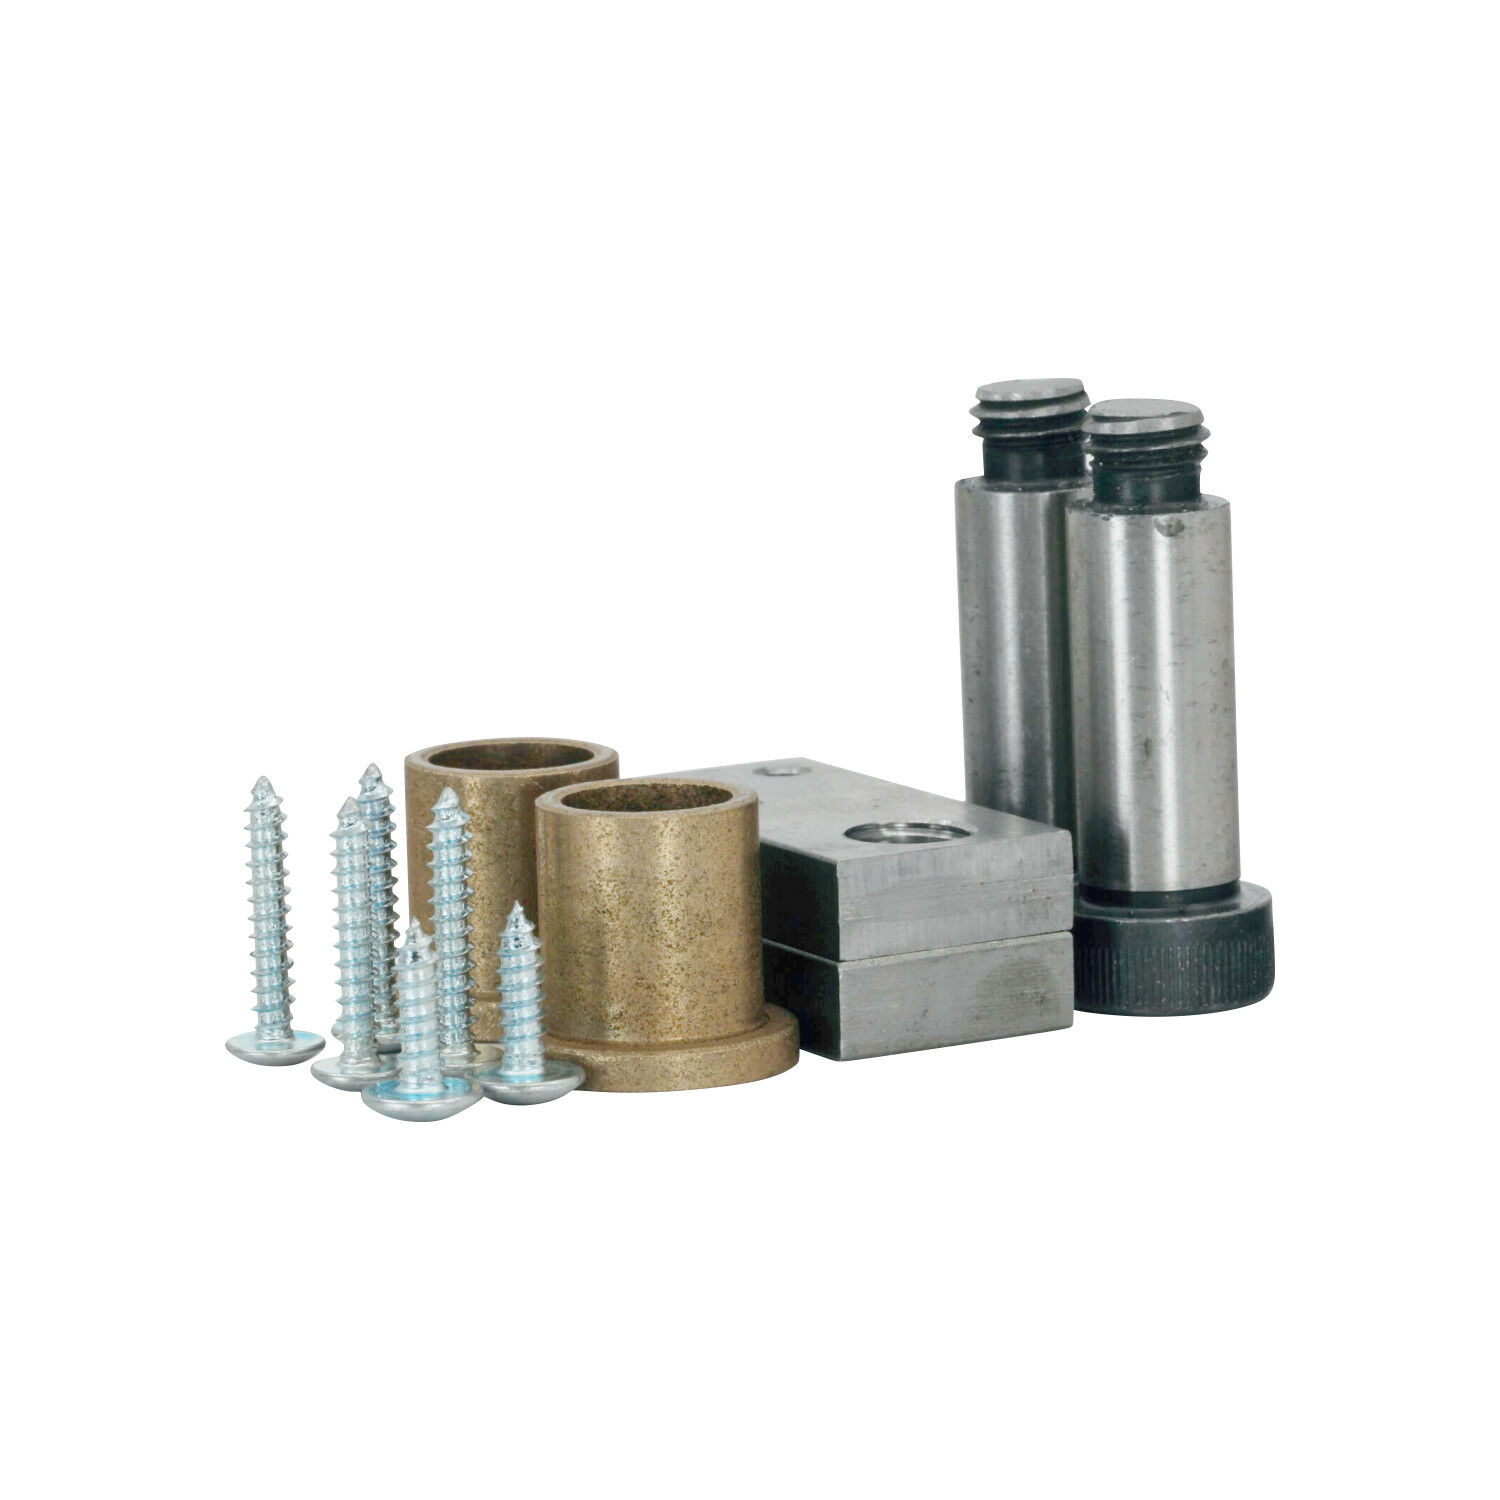 Euro Limited Drill Press Adapter Plate Kit for Euro Drill